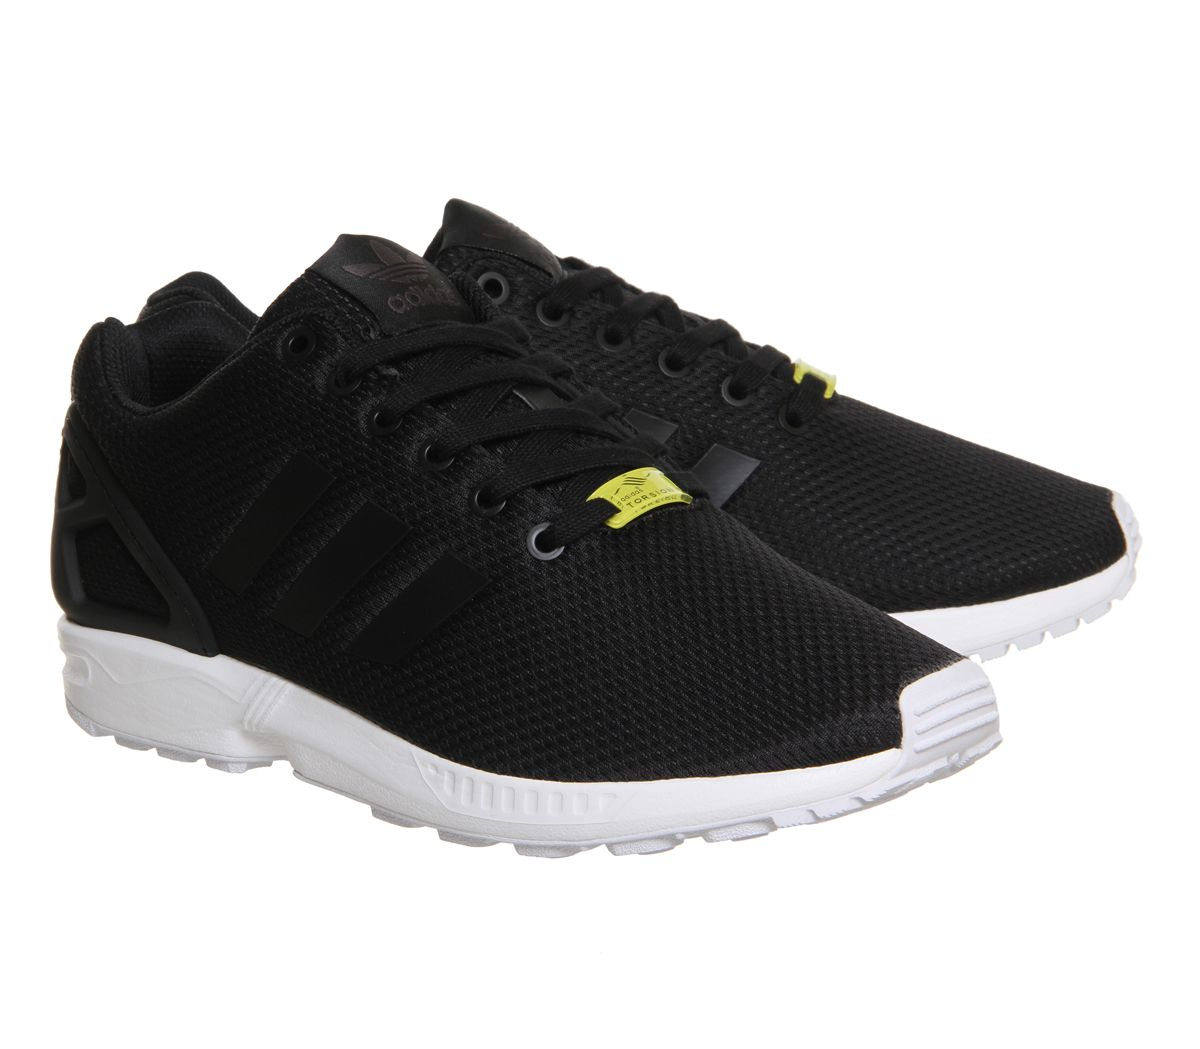 sale retailer 3a0c3 ada94 ... germany buy black white adidas zx flux from office. fa457 5e8b4